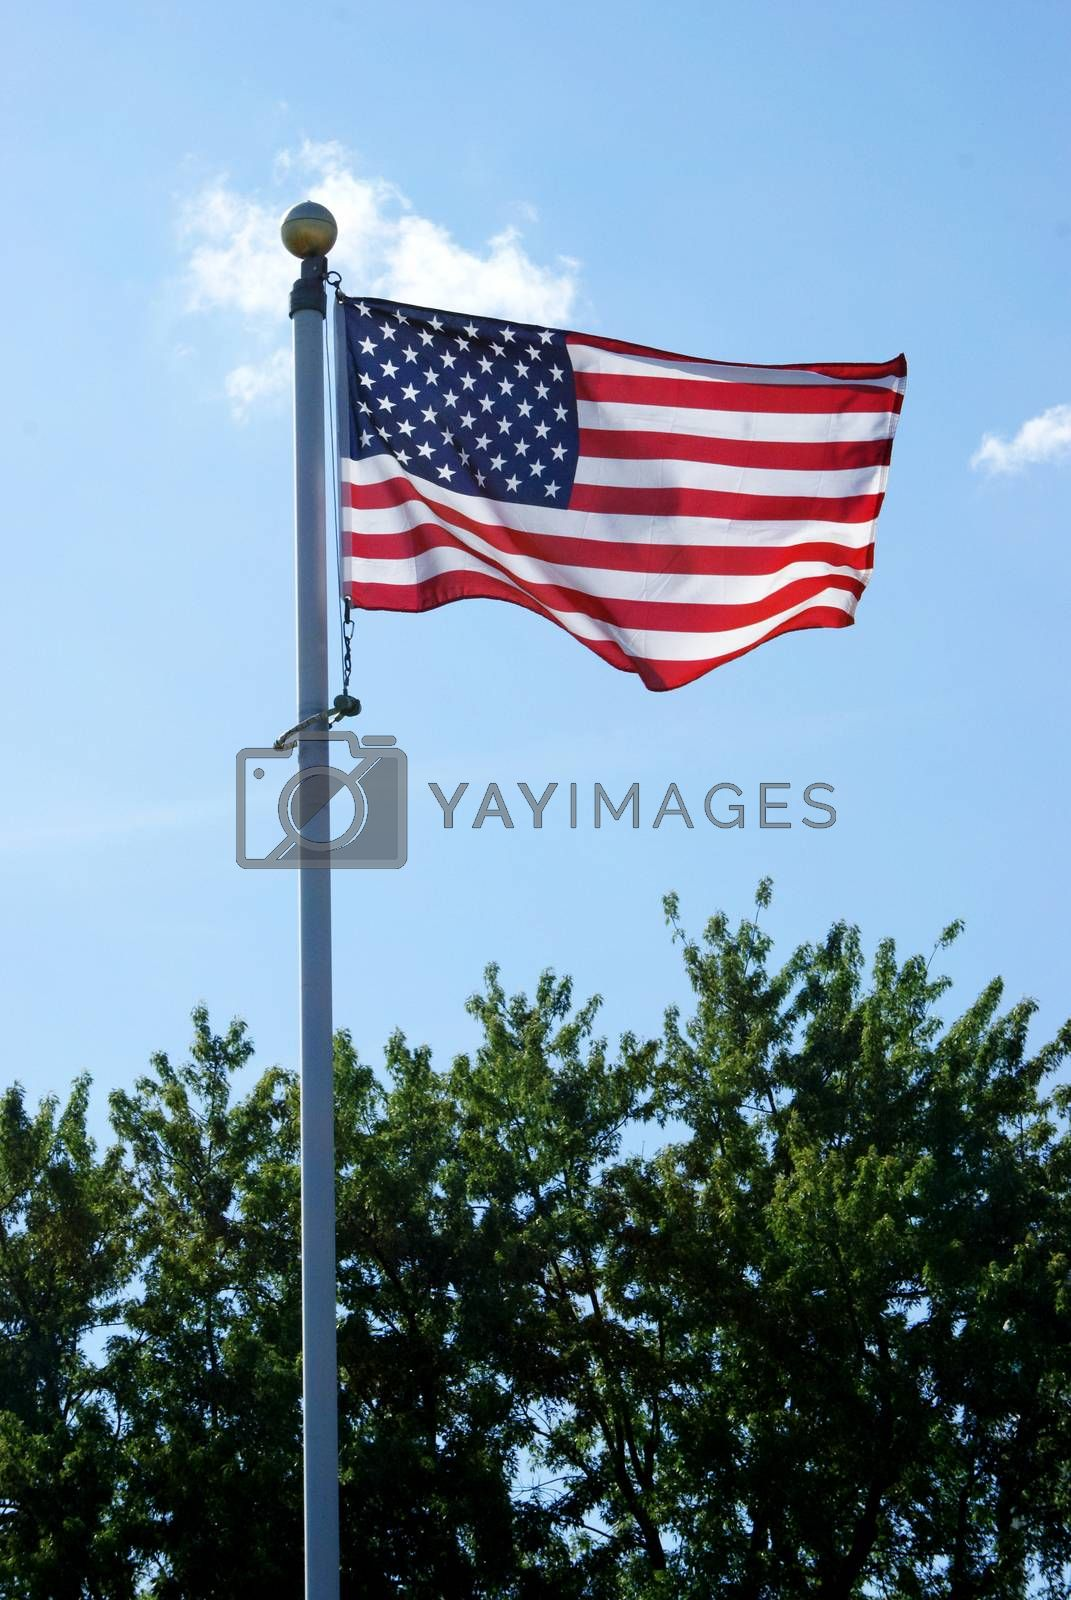 A vertical composition of an American flag flapping in the wind during the sunny daylight hours.